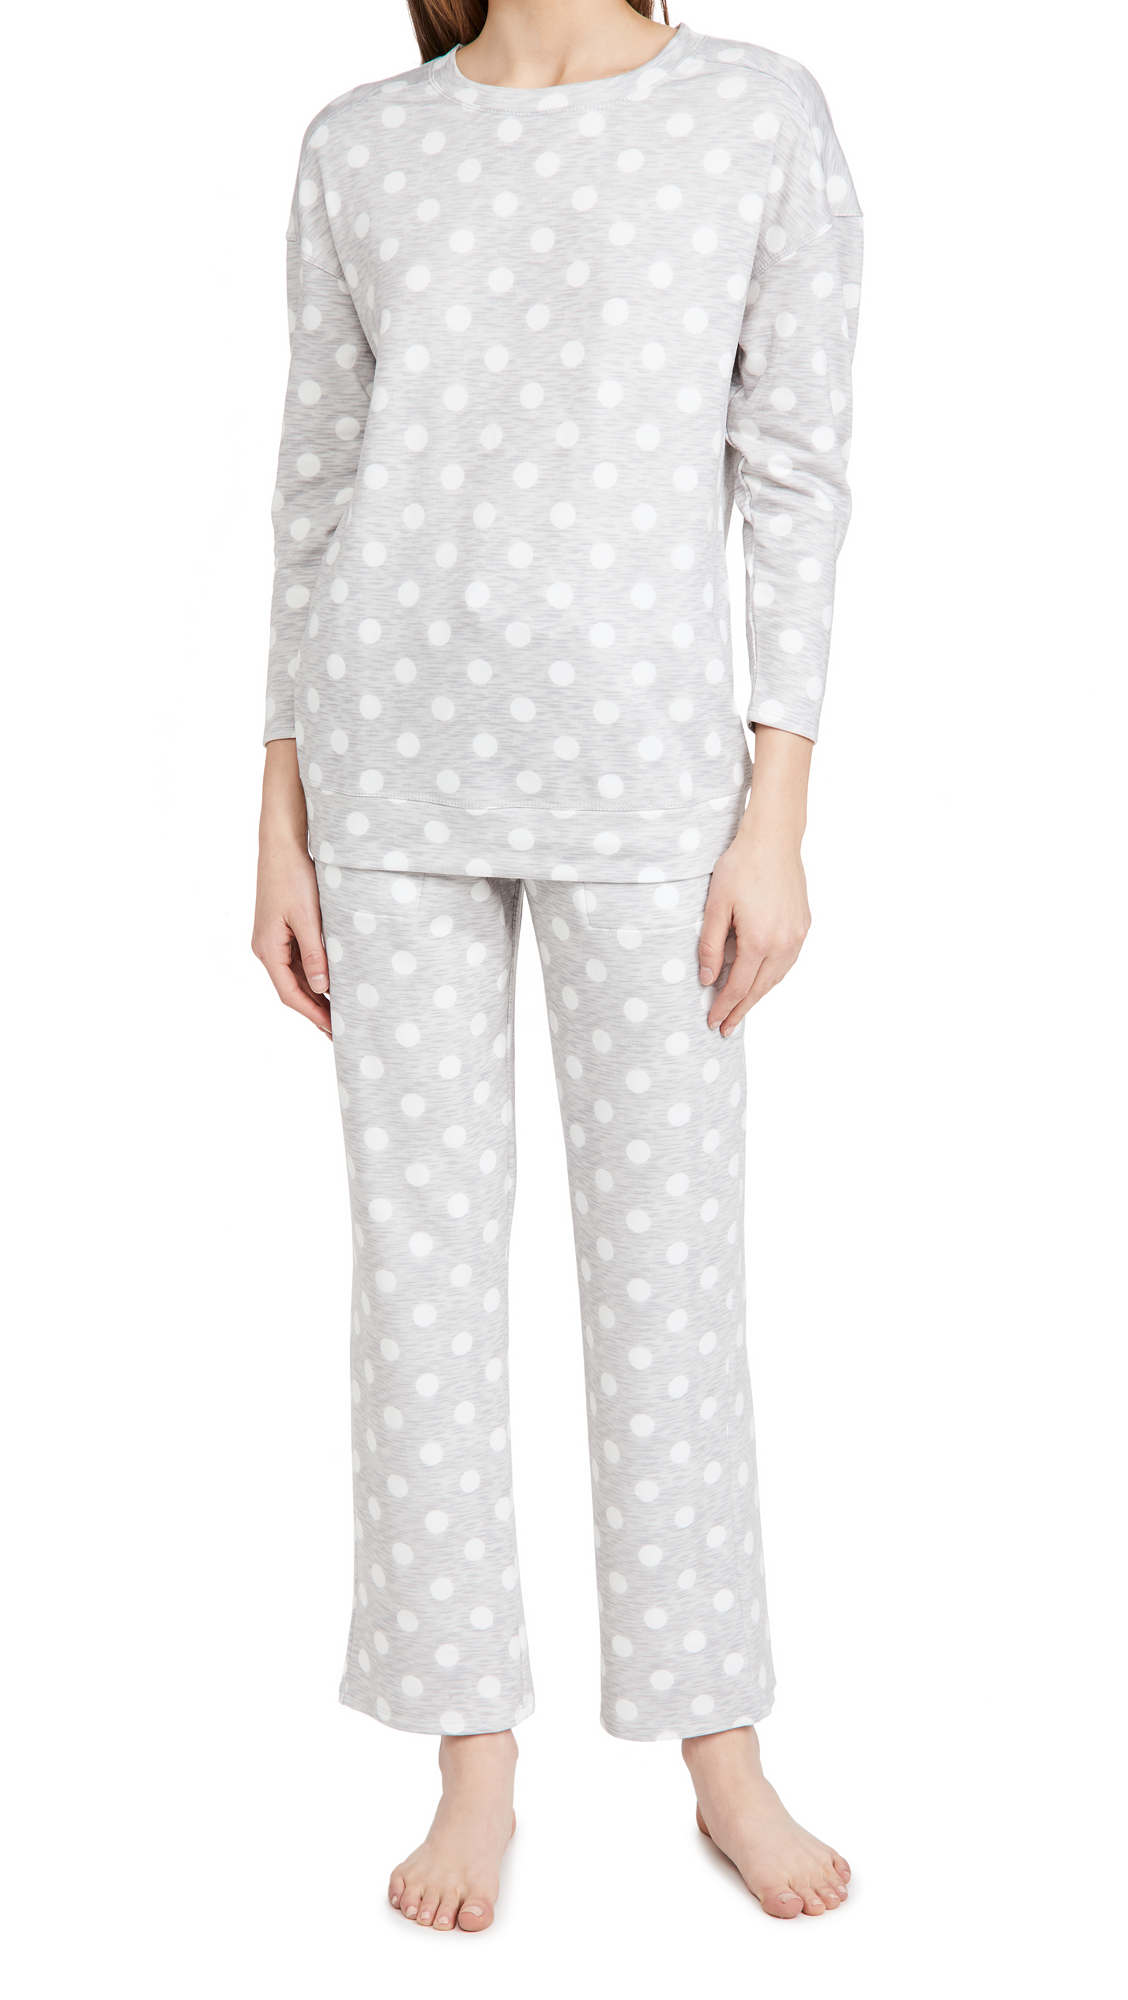 Emerson Road Brushed Butter Pajama Set